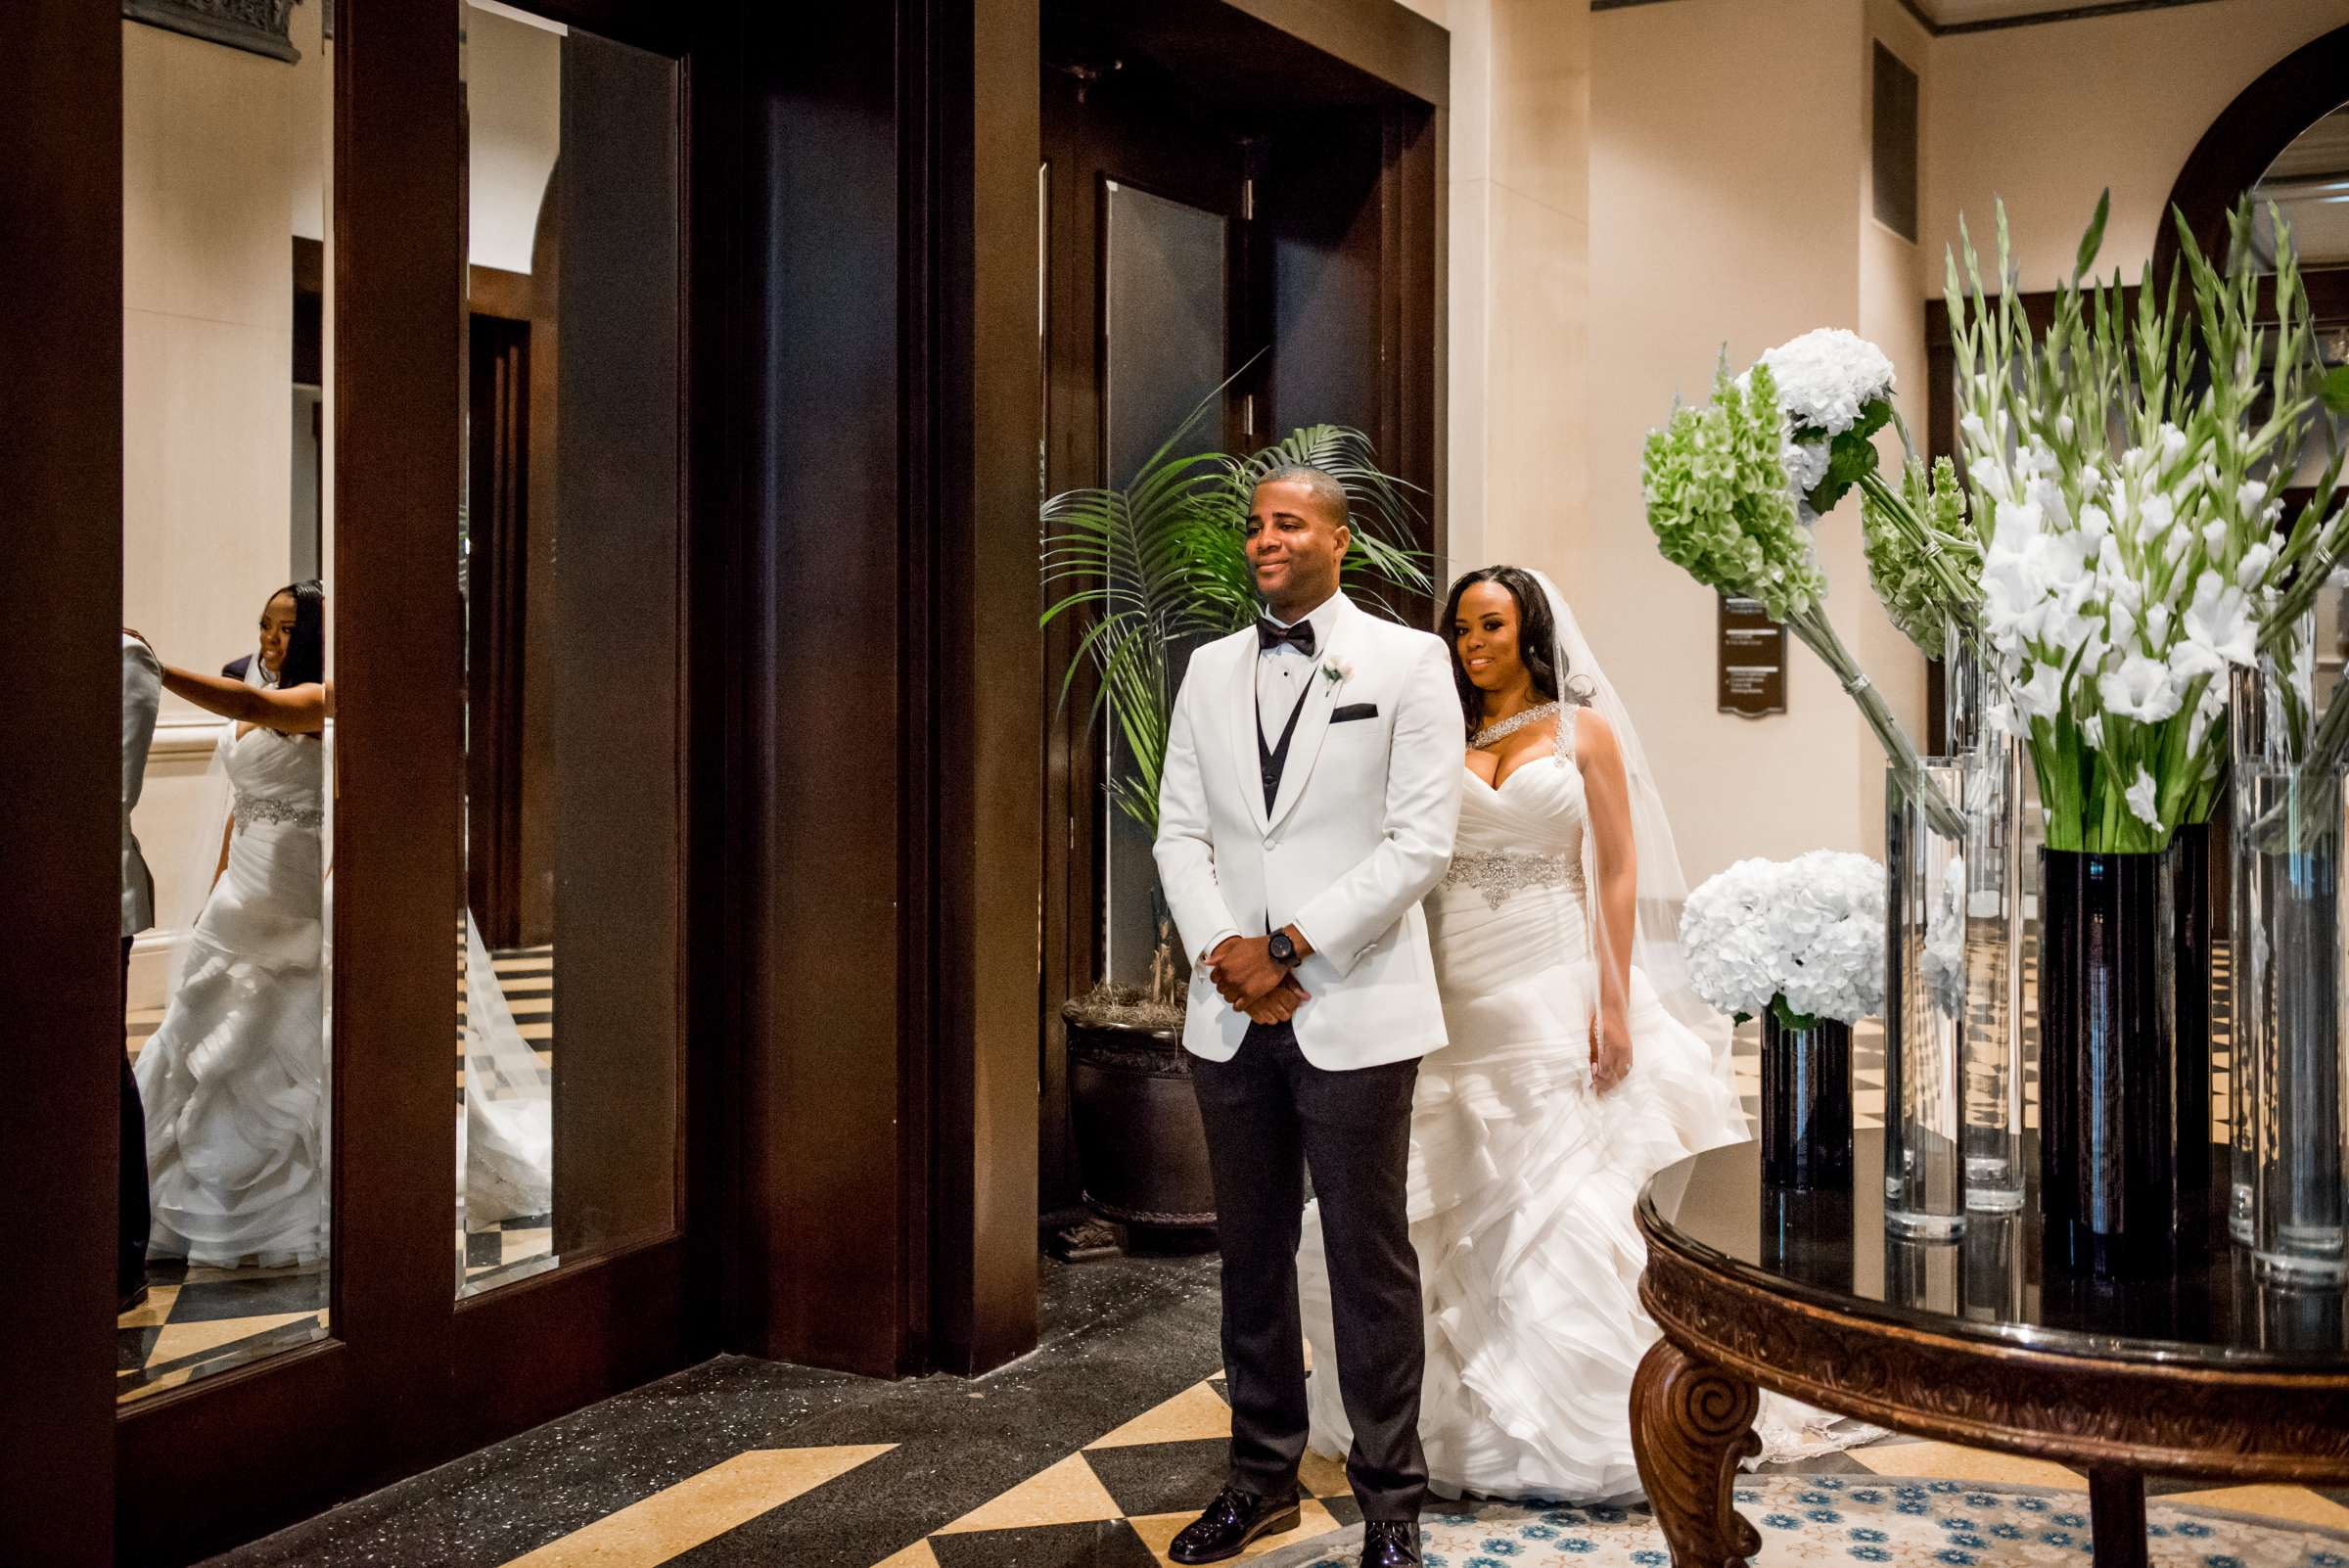 Coronado Community Center Wedding coordinated by First Comes Love Weddings & Events, Nikia and Charles Wedding Photo #36 by True Photography